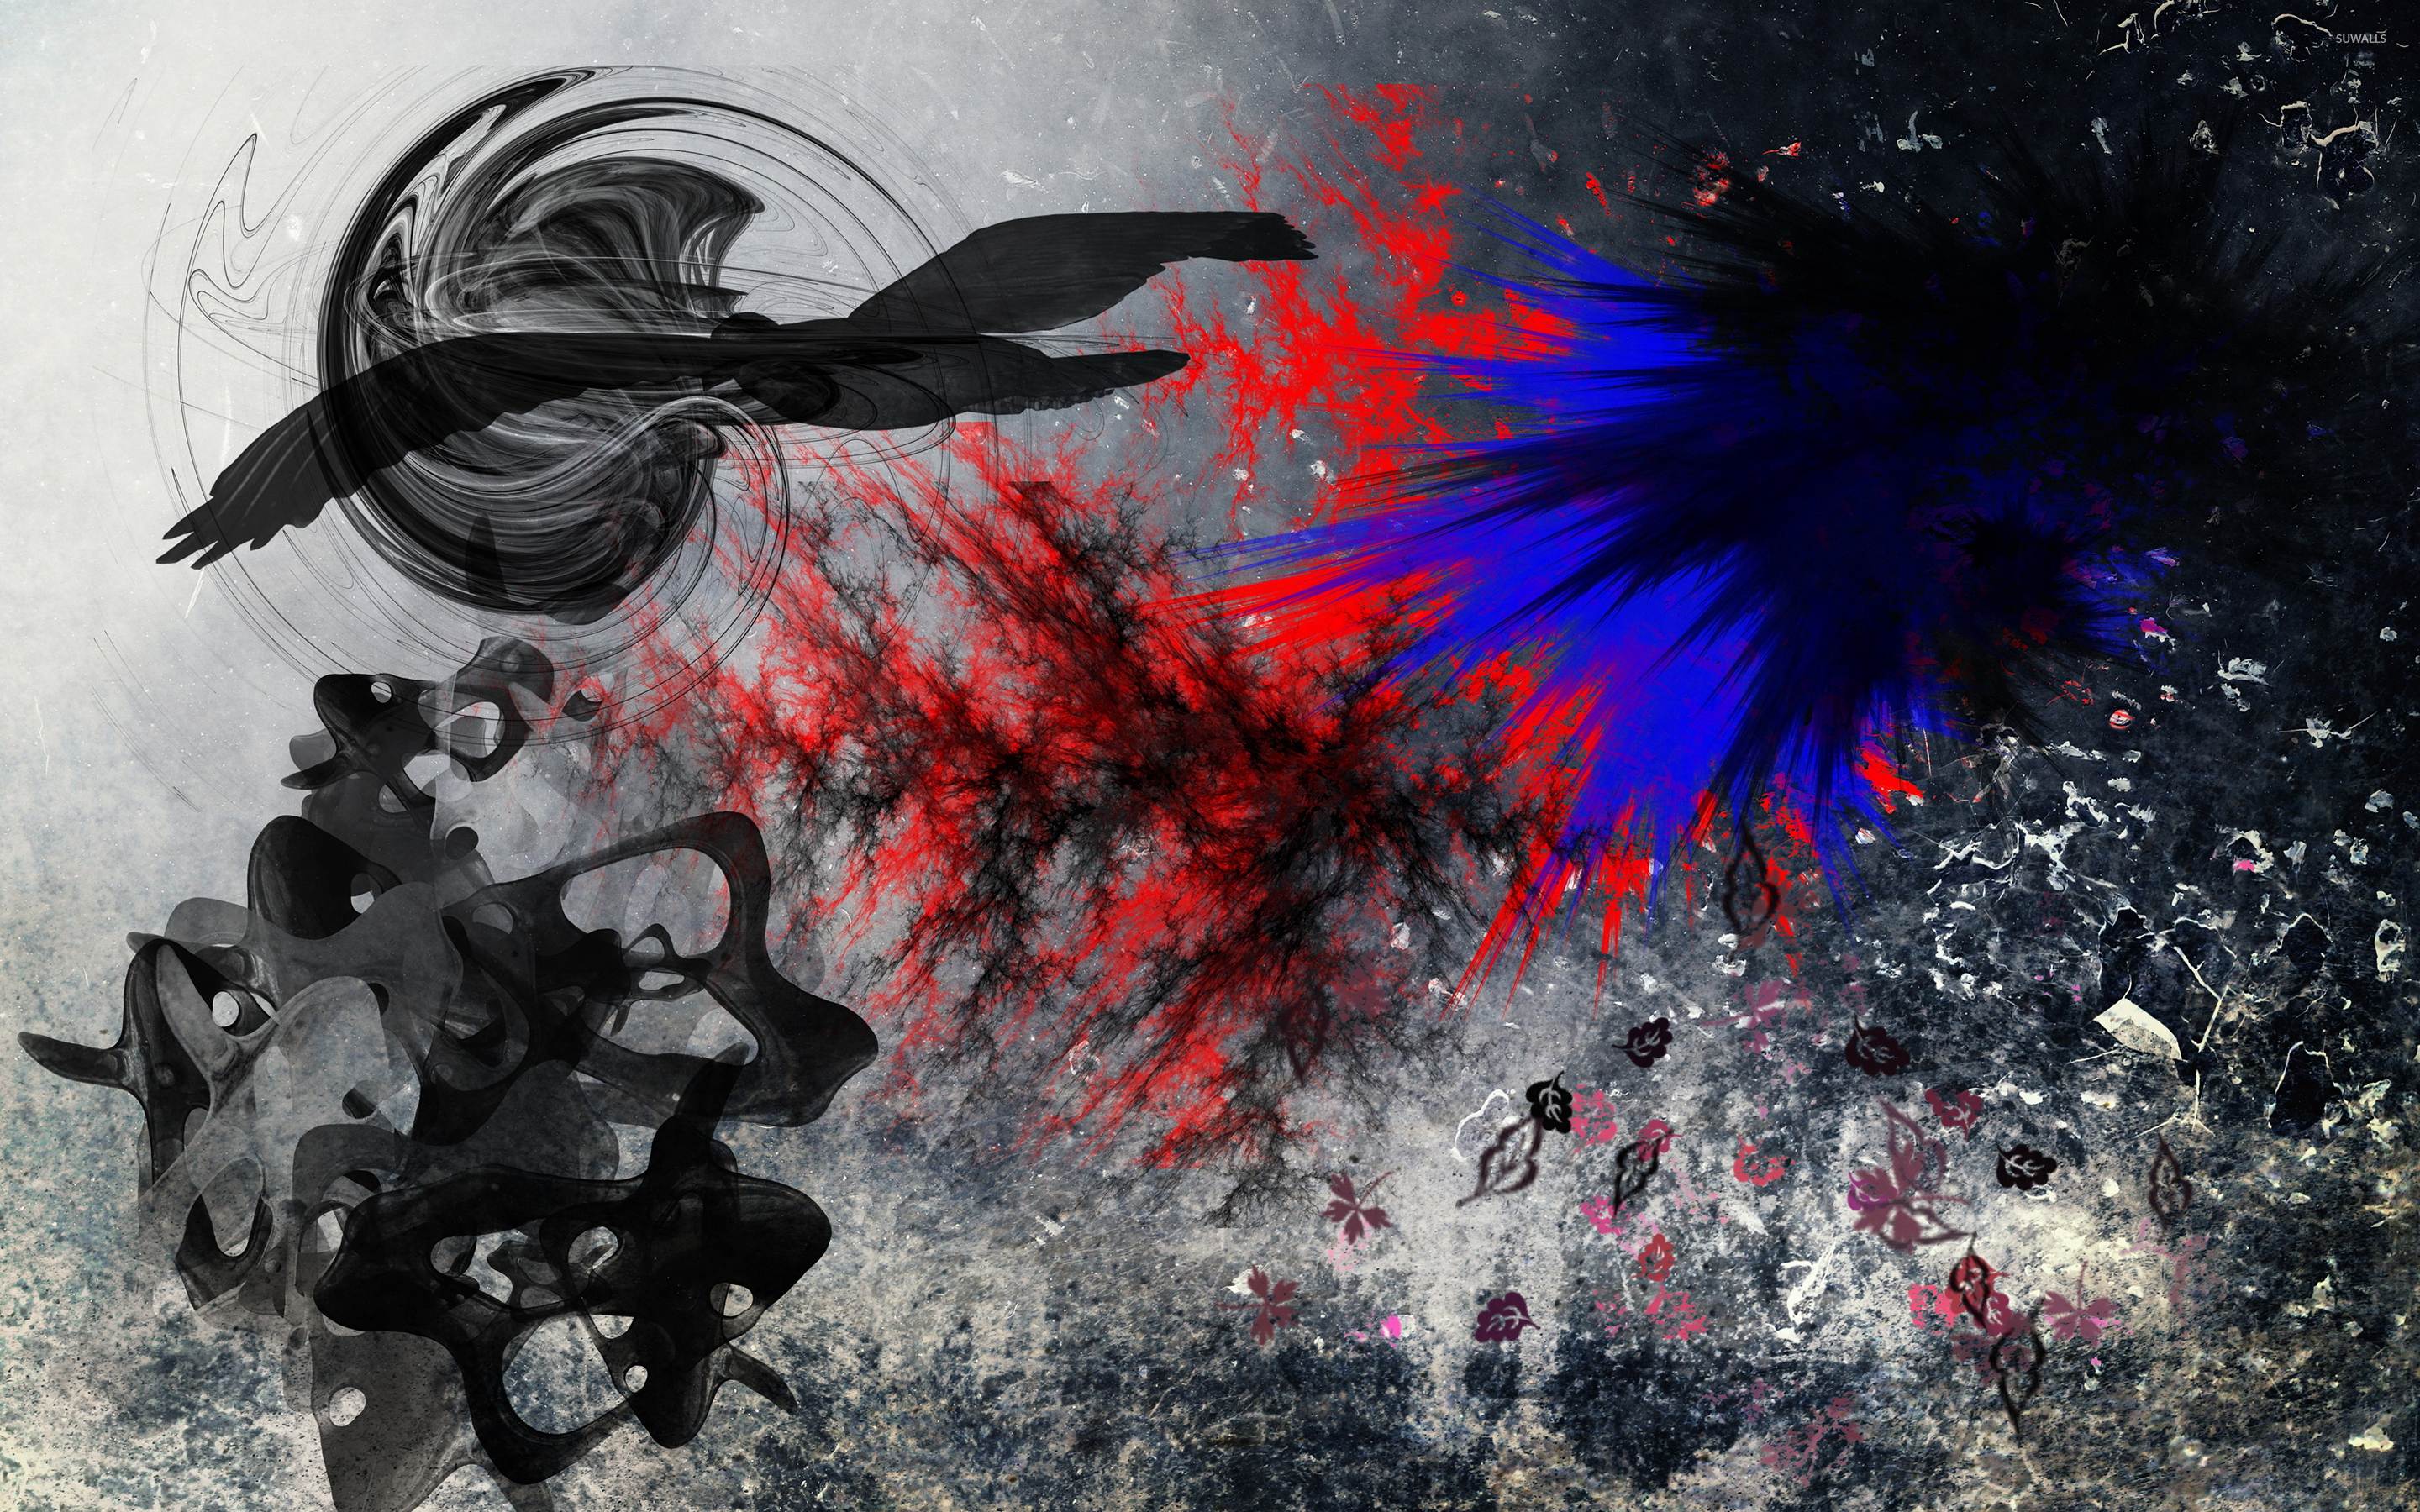 black bird flying above the mixed colorful smoke wallpaper - digital